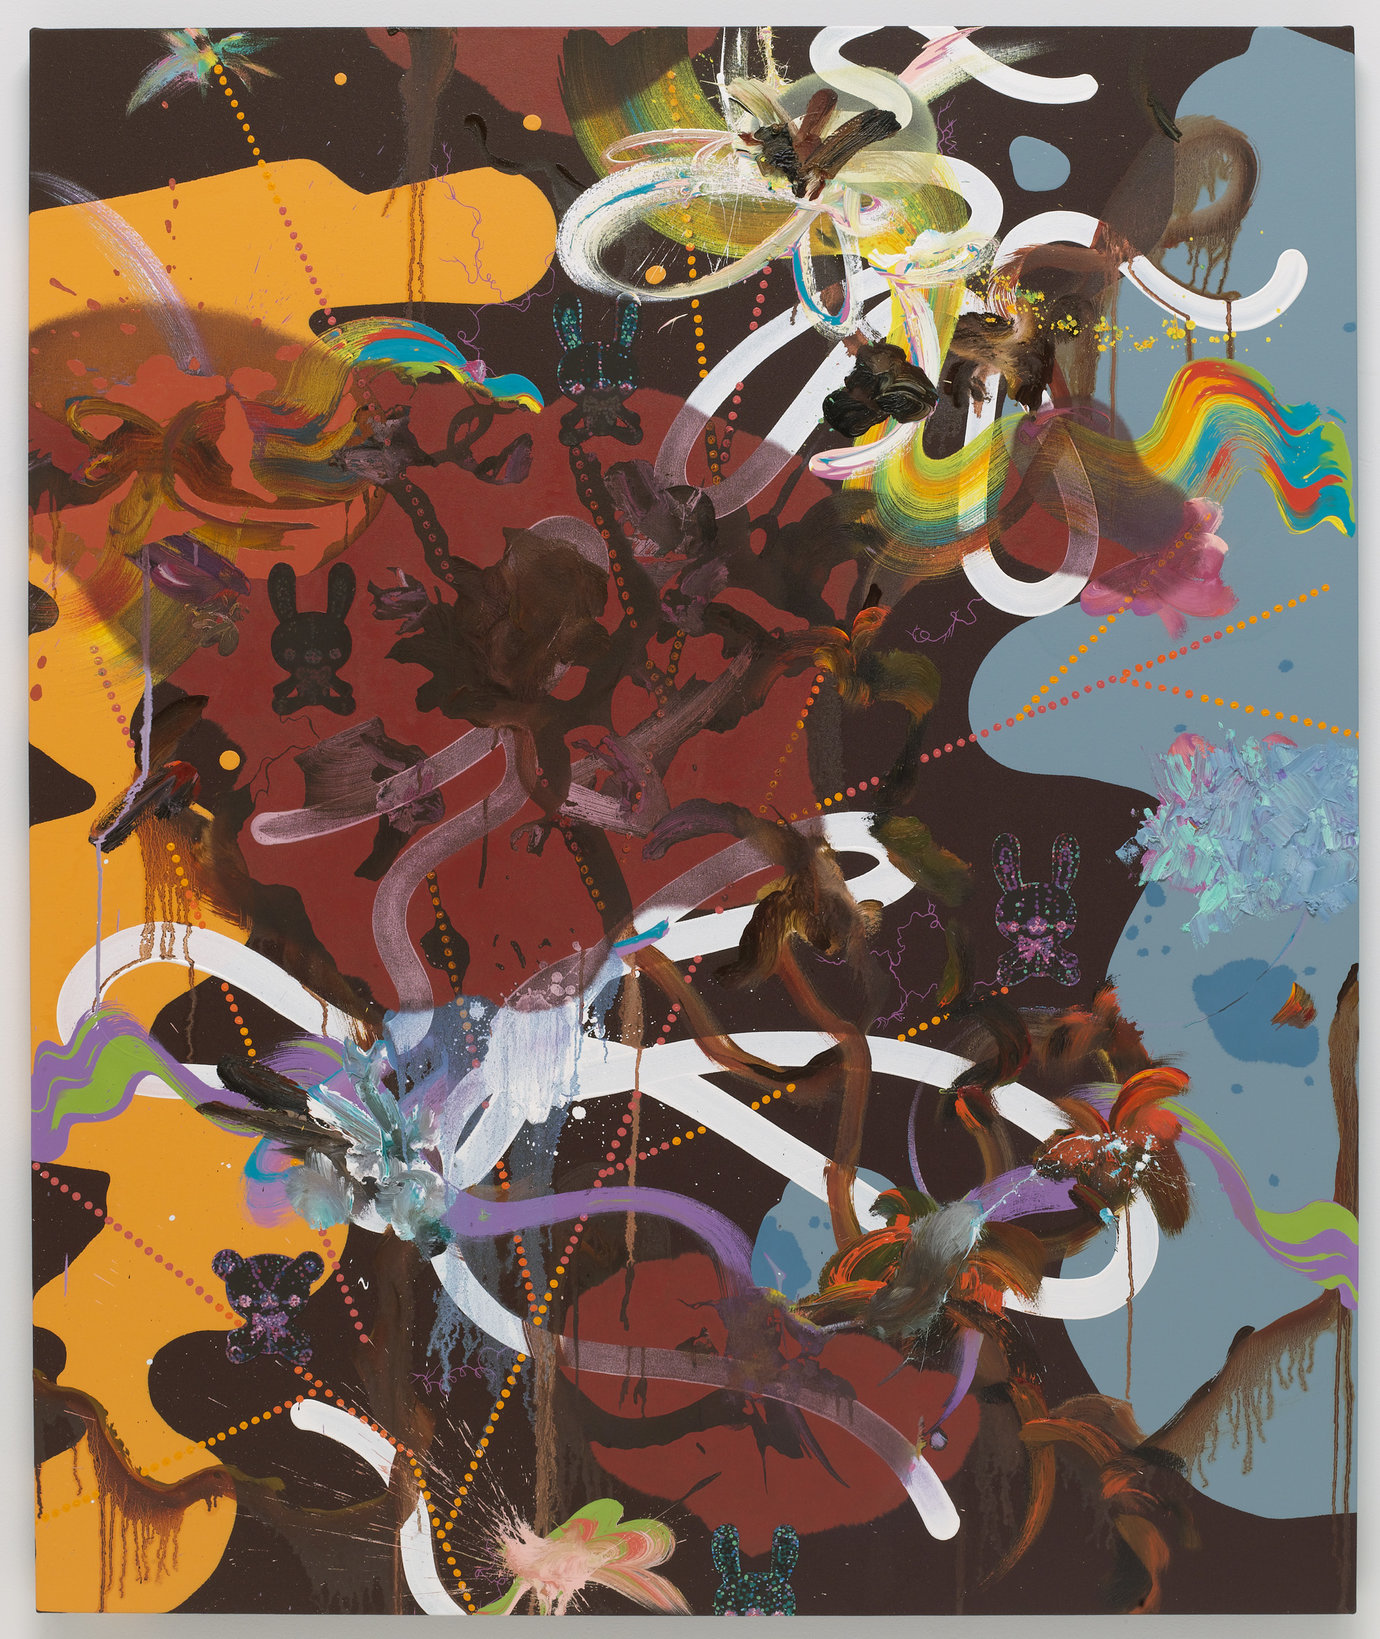 ", 2008. Oil, acrylic and gouache on canvas, 60"" x 50"" (152.4 cm x 127 cm)."